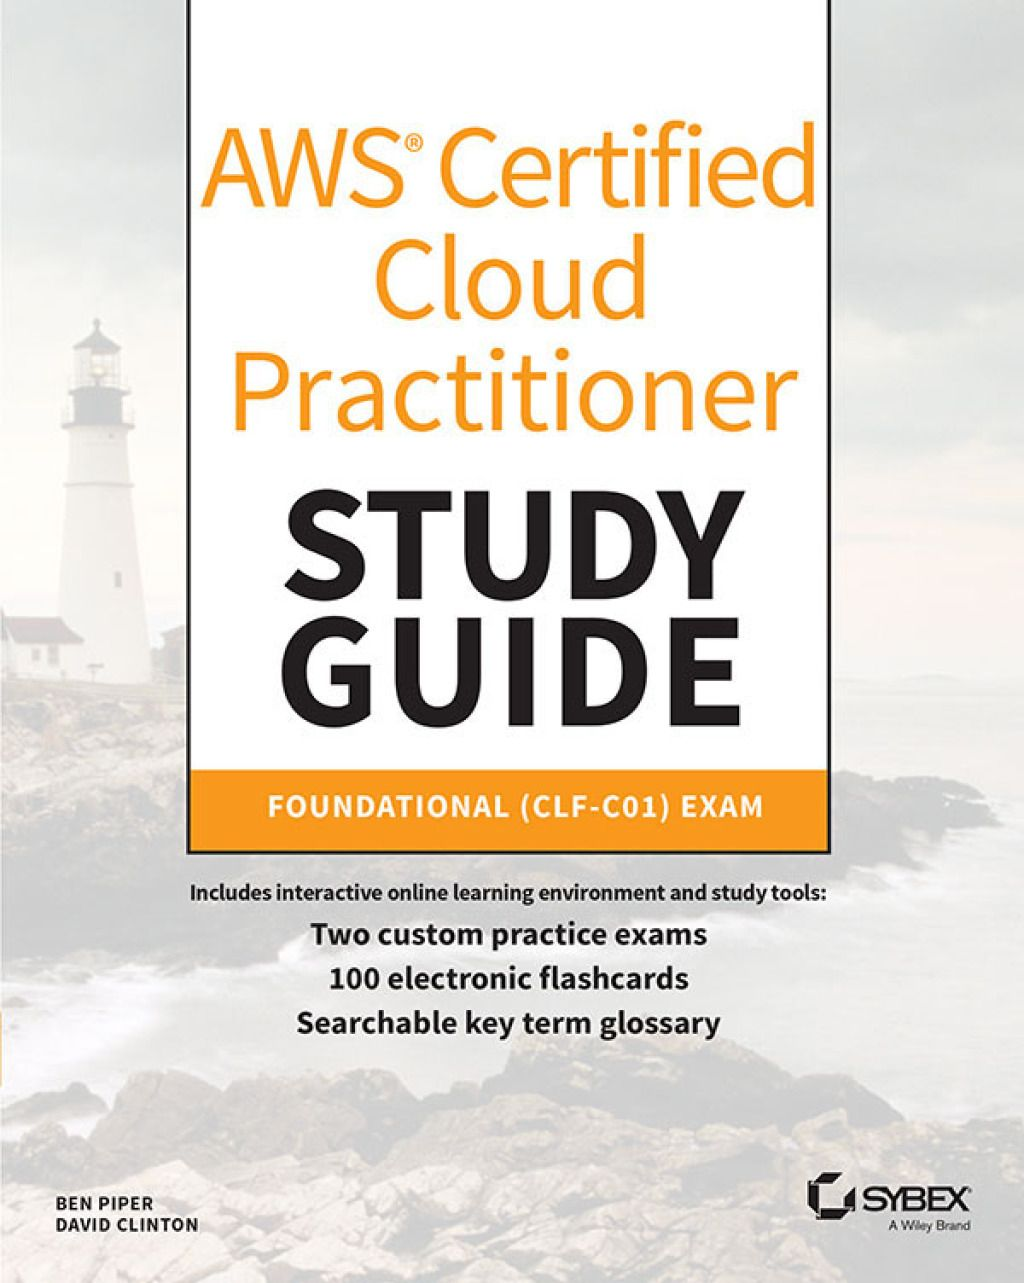 AWS Certified Cloud Practitioner Study Guide (eBook